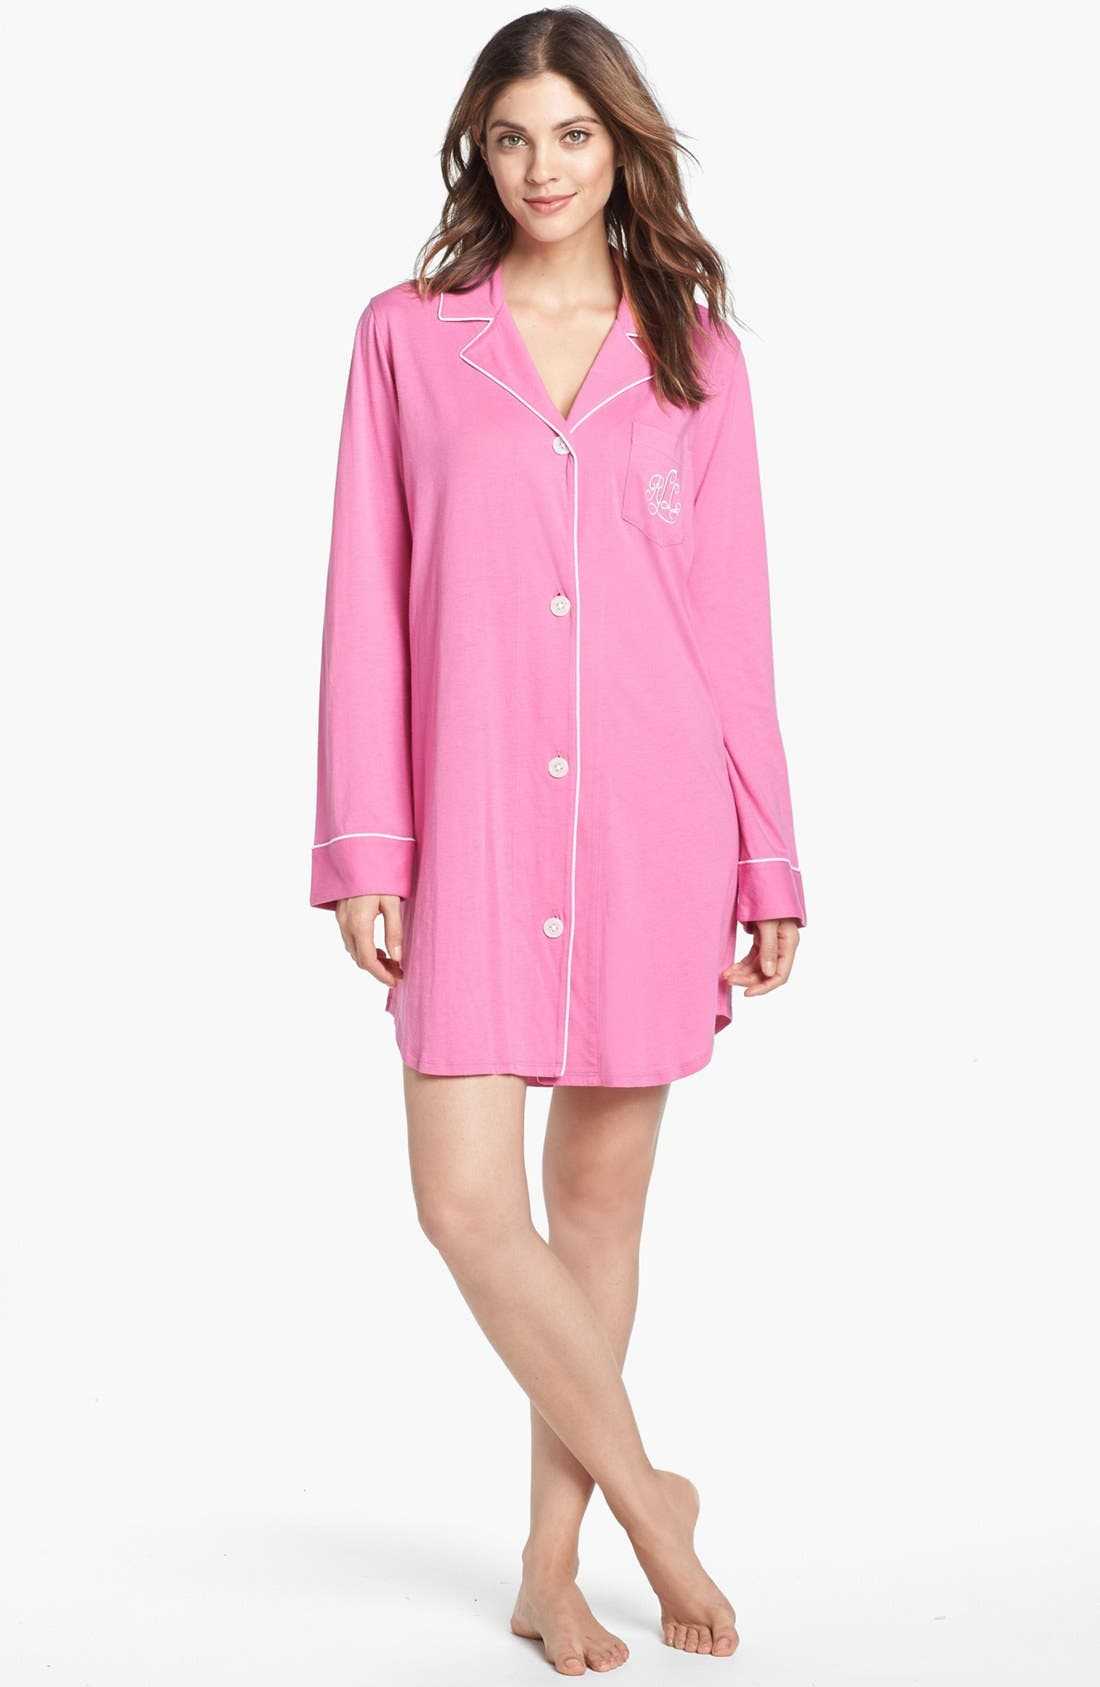 Lauren Ralph Lauren Knit Nightshirt (Online Only)